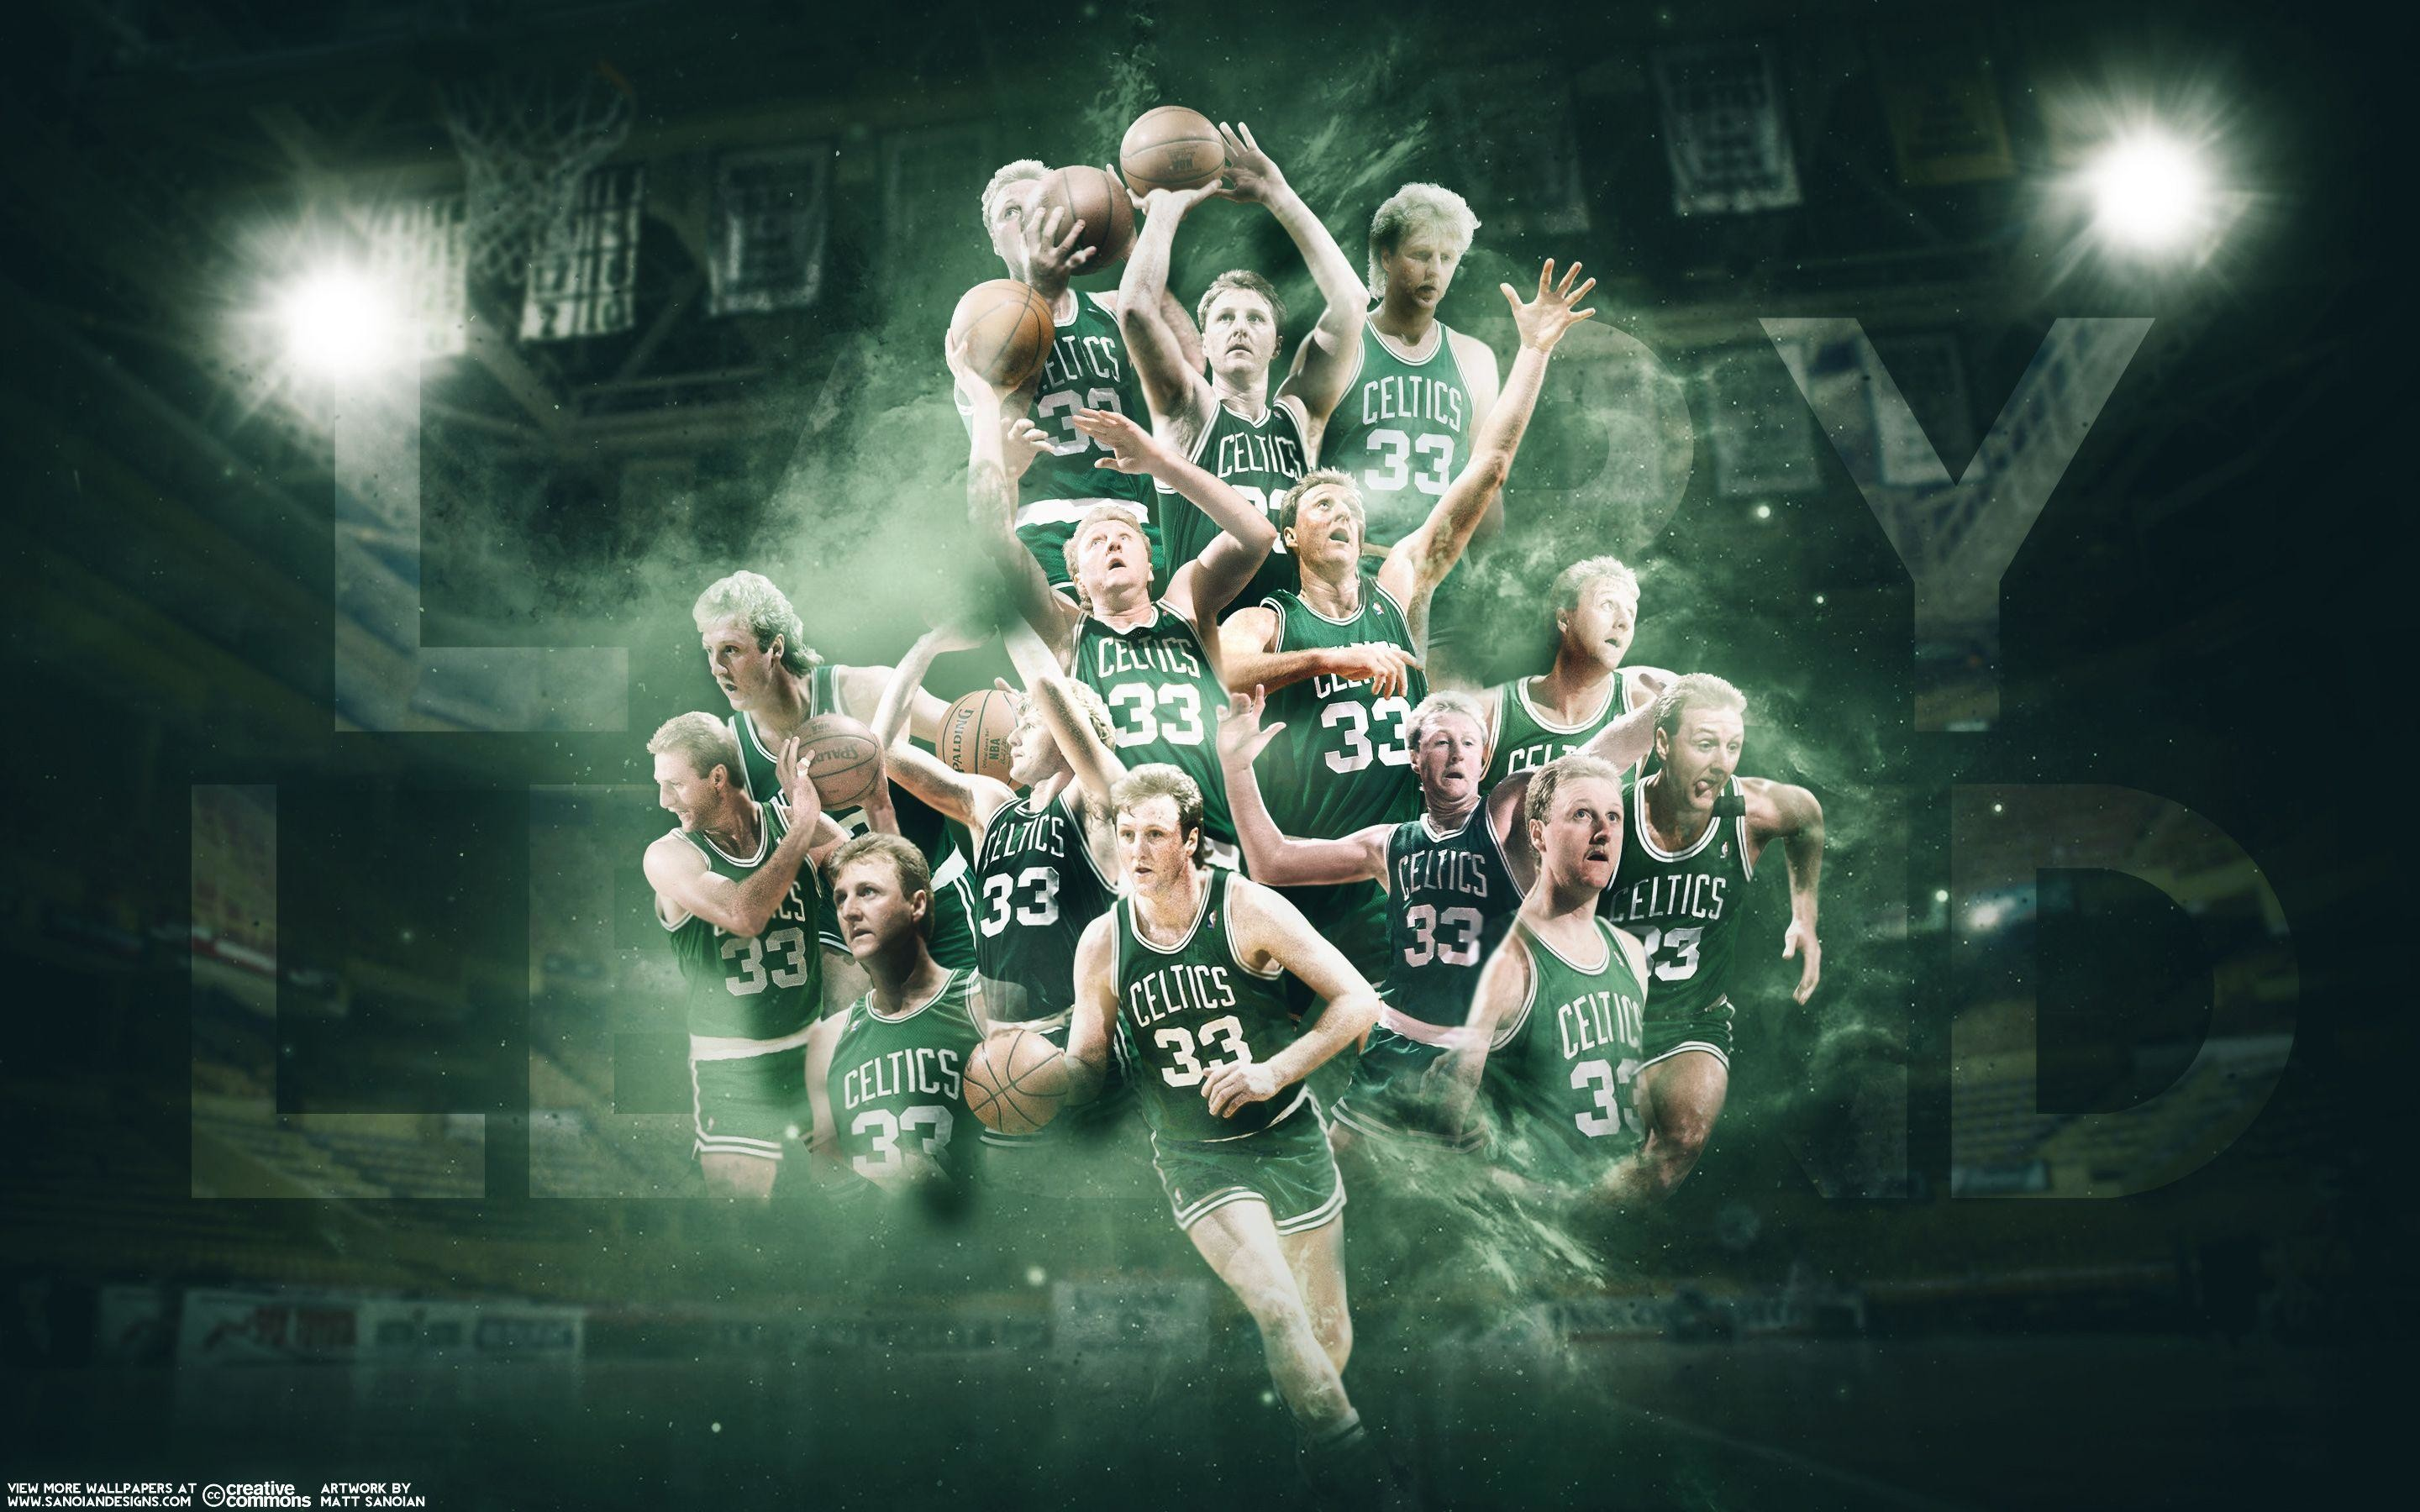 2880x1800 Larry Bird Wallpapers | Basketball Wallpapers at BasketWallpapers.com